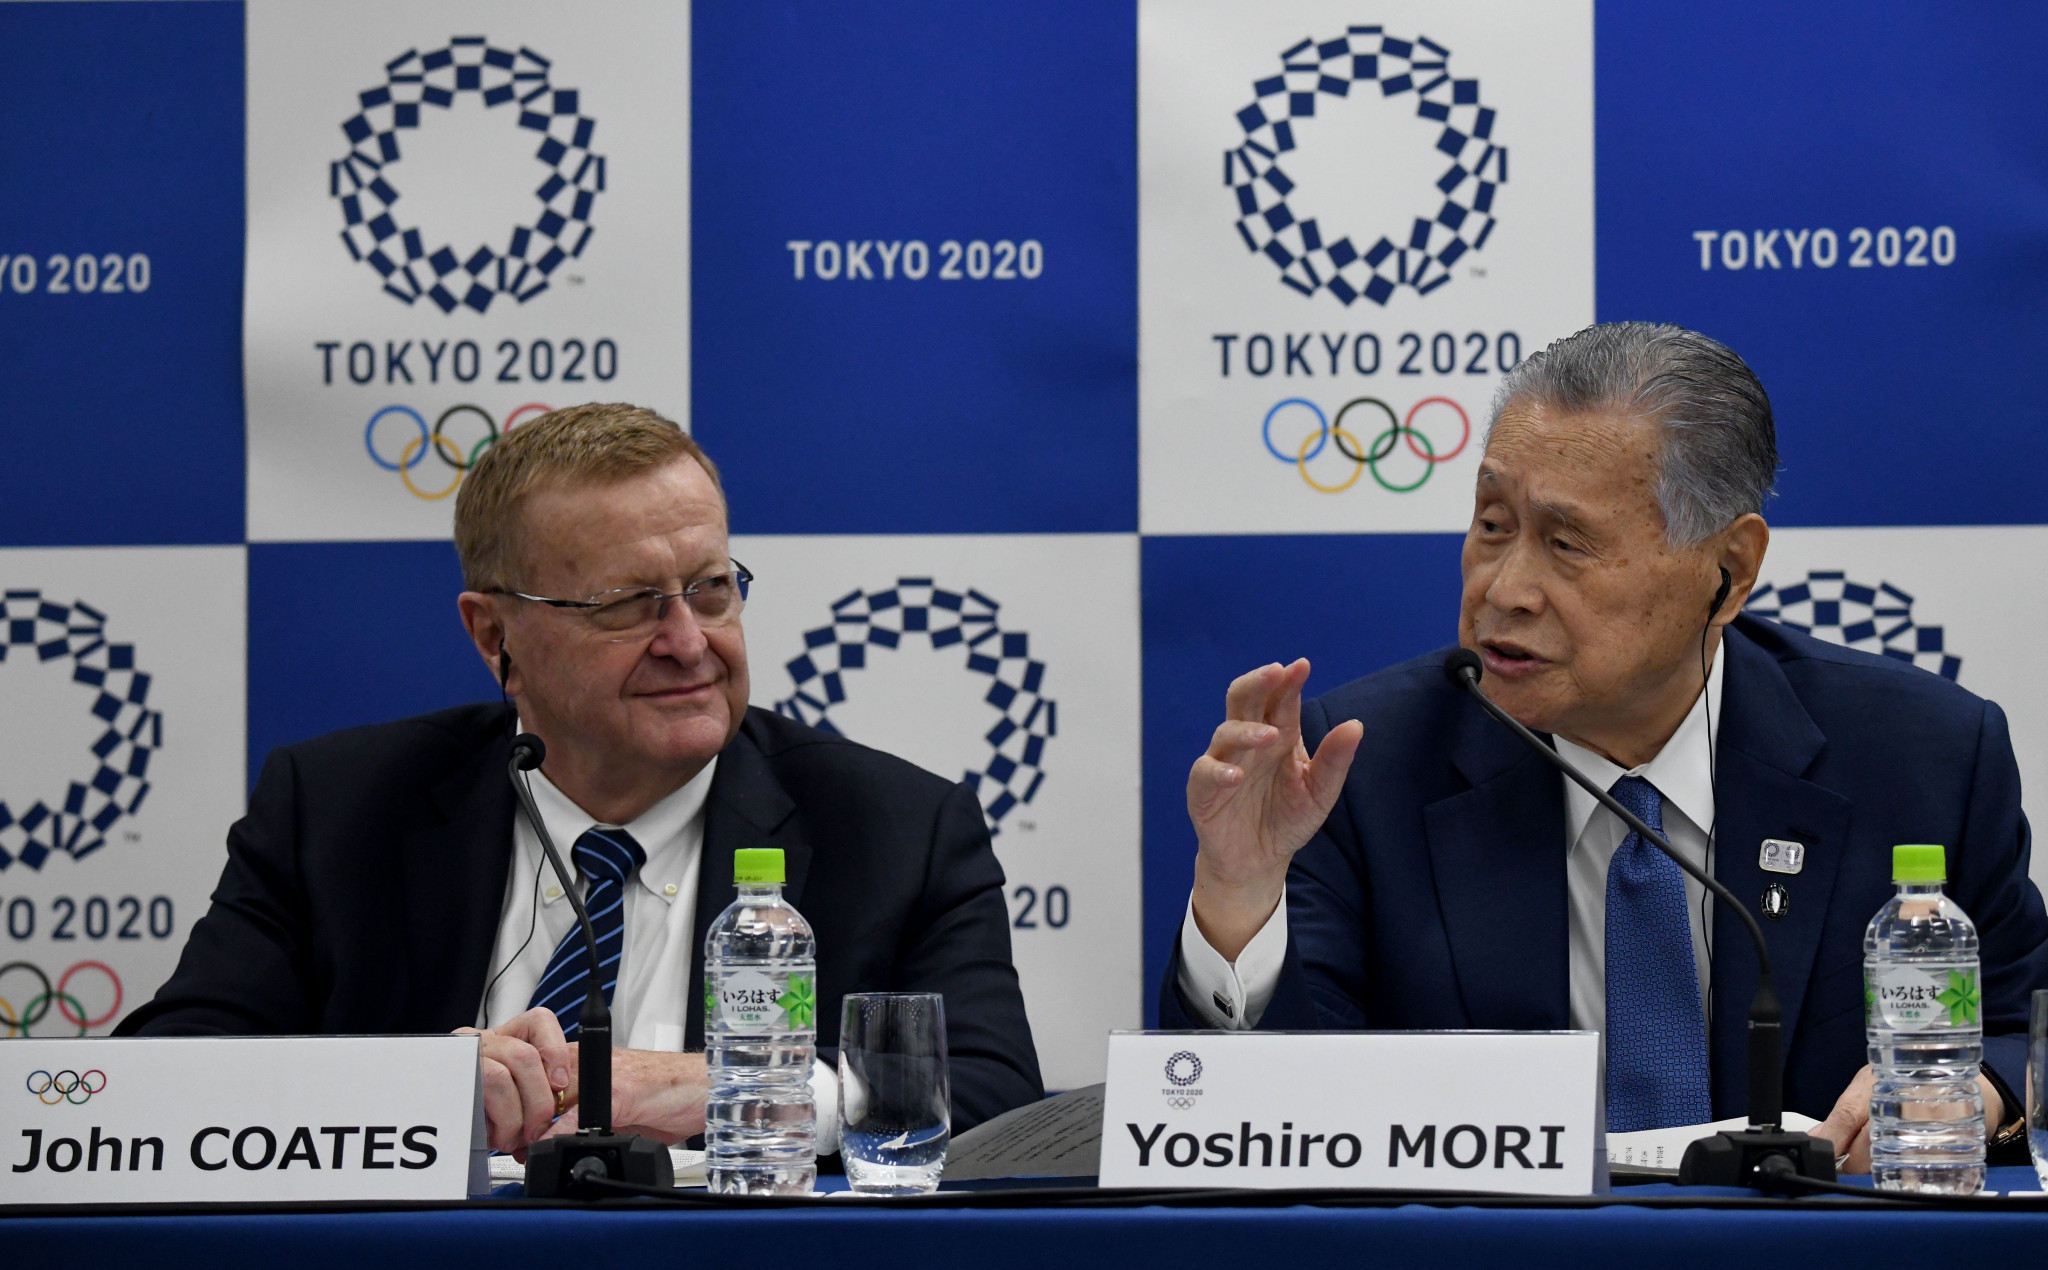 IOC Coordination Commission head John Coates has repeatedly urged Tokyo 2020 to reduce costs ©Getty Images